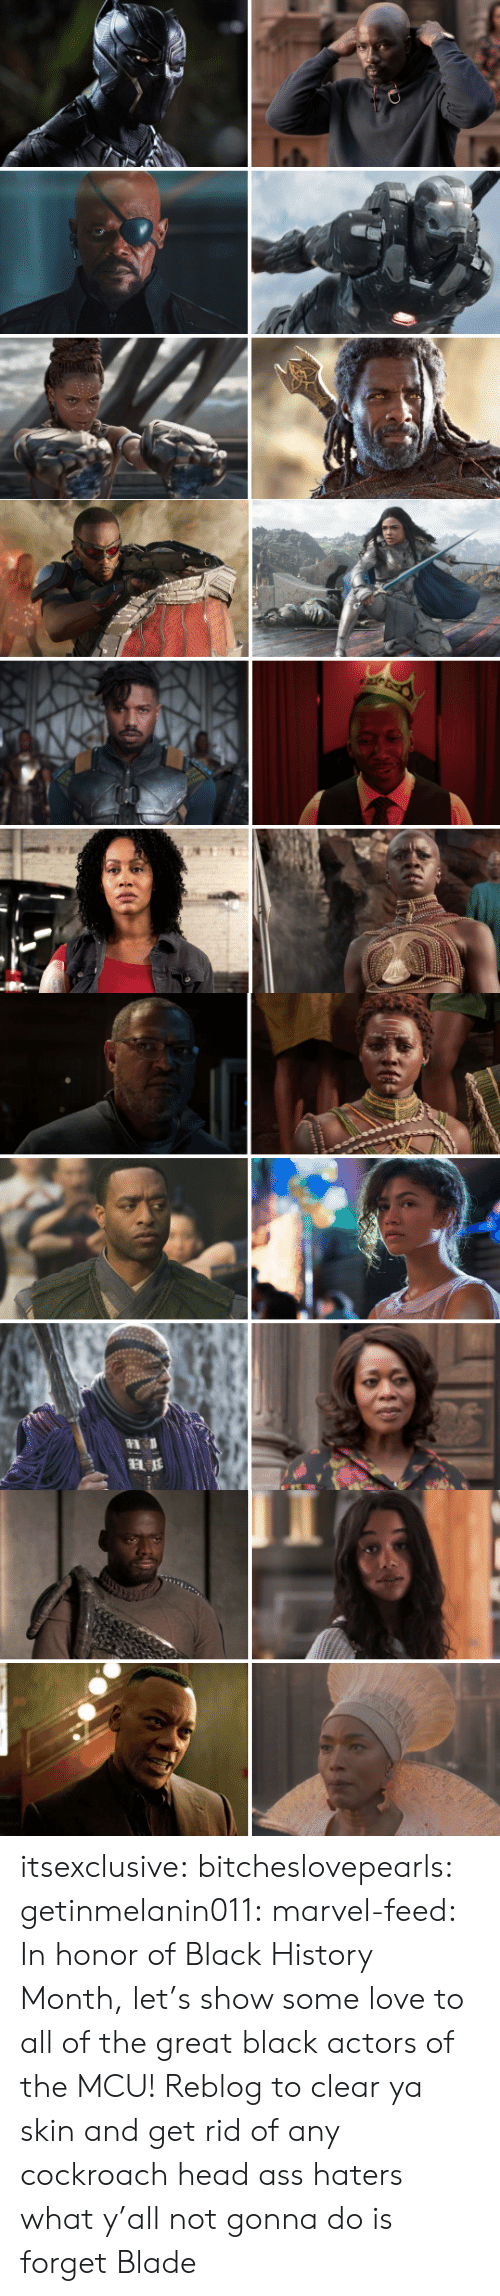 Ass, Black History Month, and Blade: itsexclusive:  bitcheslovepearls:   getinmelanin011:  marvel-feed:  In honor of Black History Month, let's show some love to all of the great black actors of the MCU!  Reblog to clear ya skin and get rid of any cockroach head ass haters   what y'all not gonna do is forget Blade